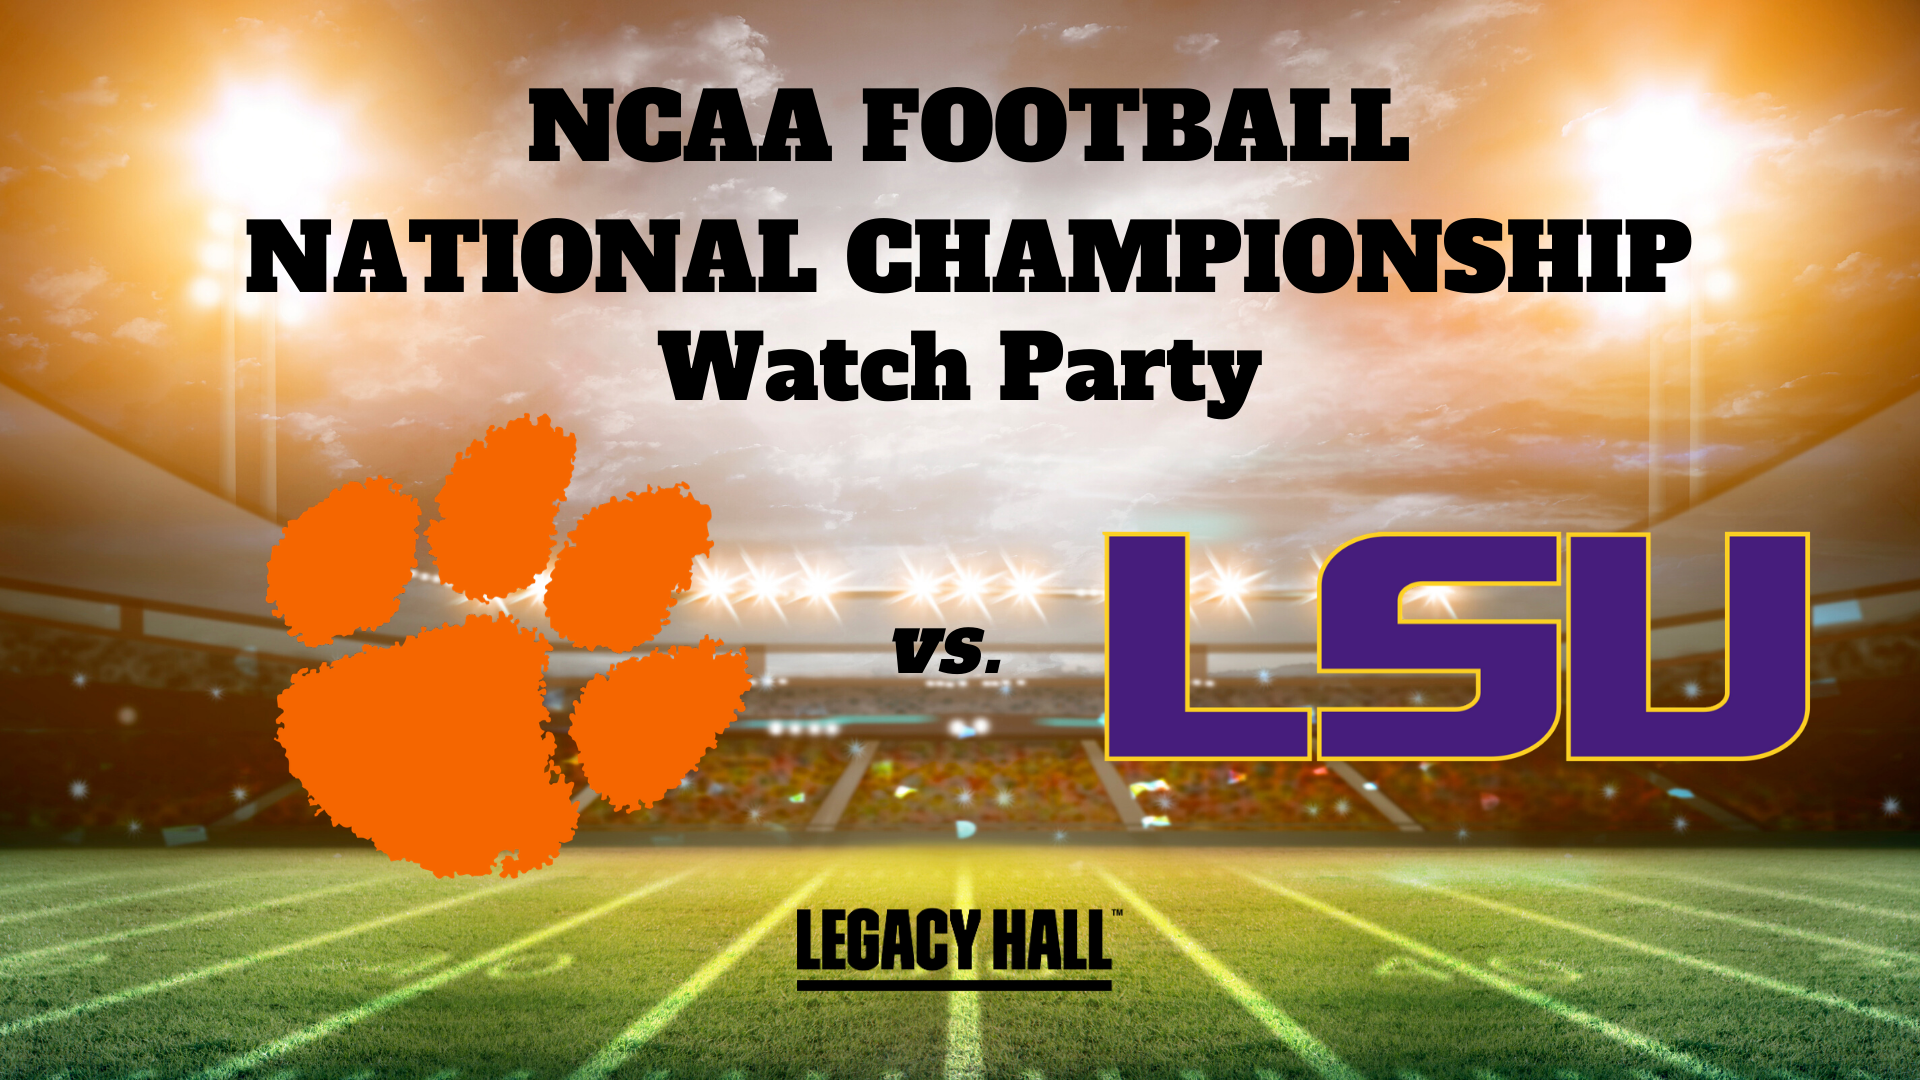 NCAA National Championship Watch Party - hero